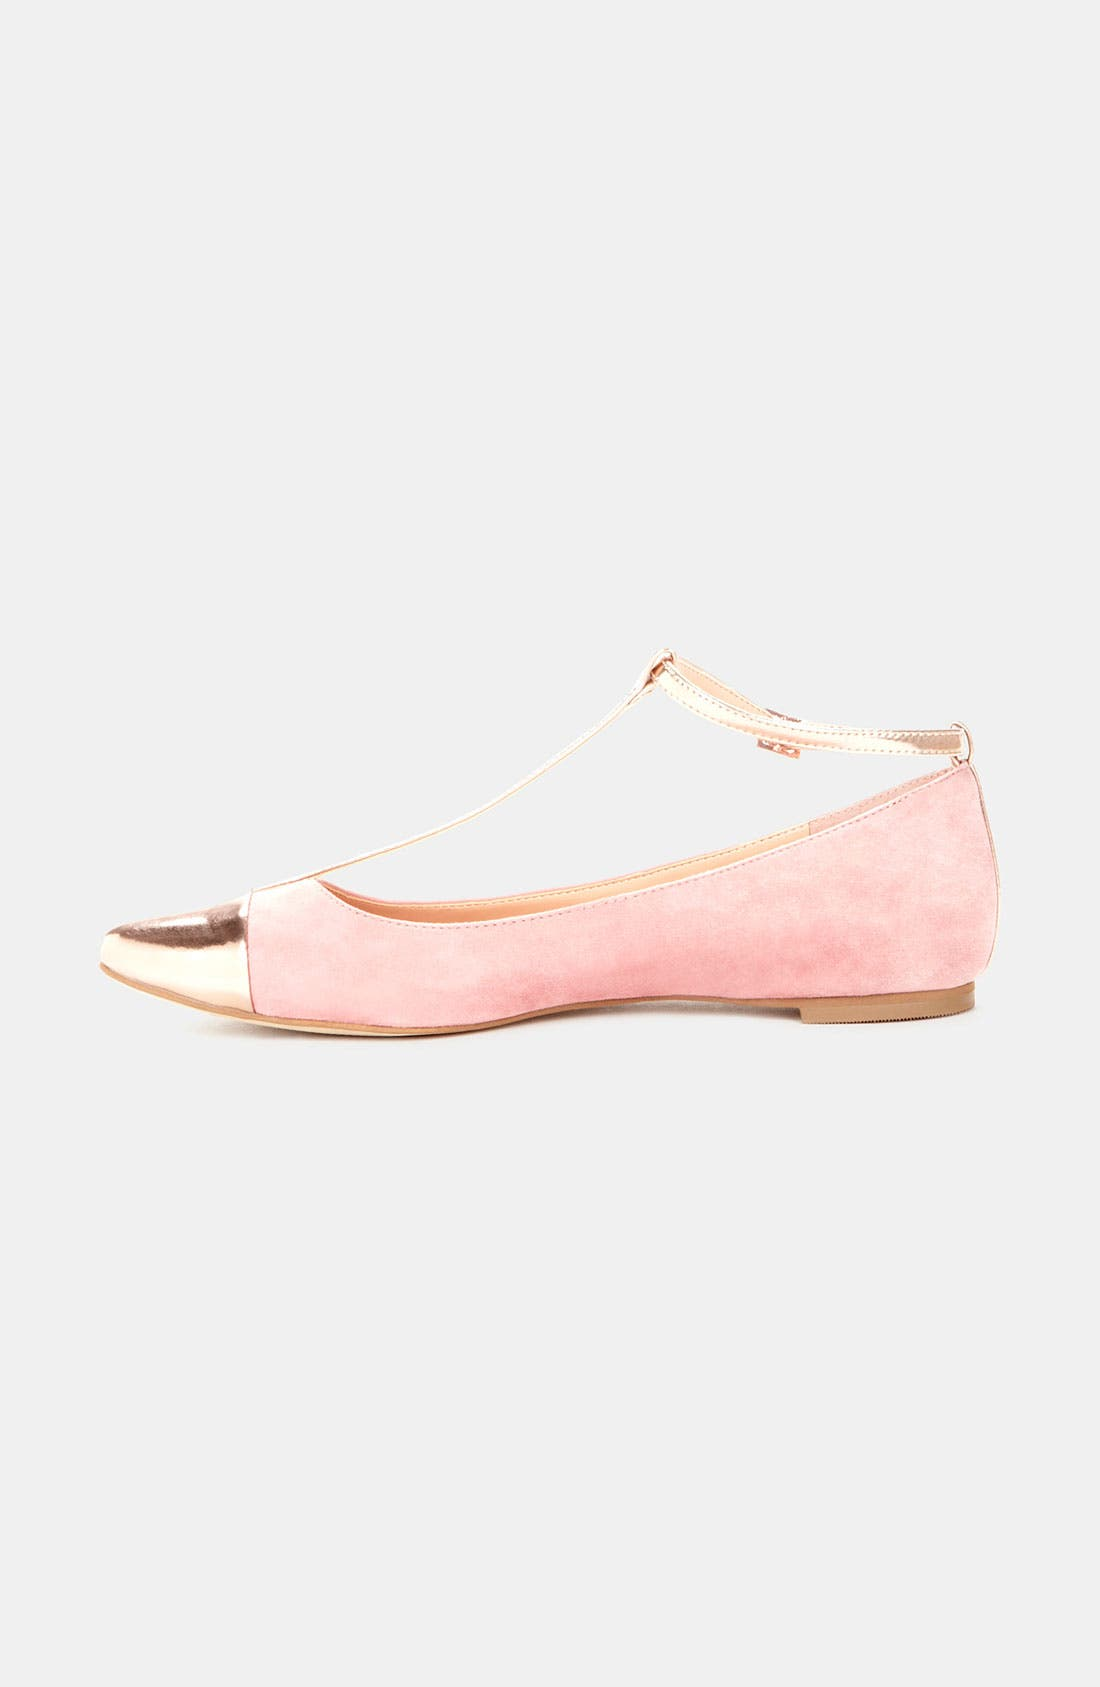 ,                             Julianne Hough for Sole Society 'Addy' Flat,                             Alternate thumbnail 40, color,                             680